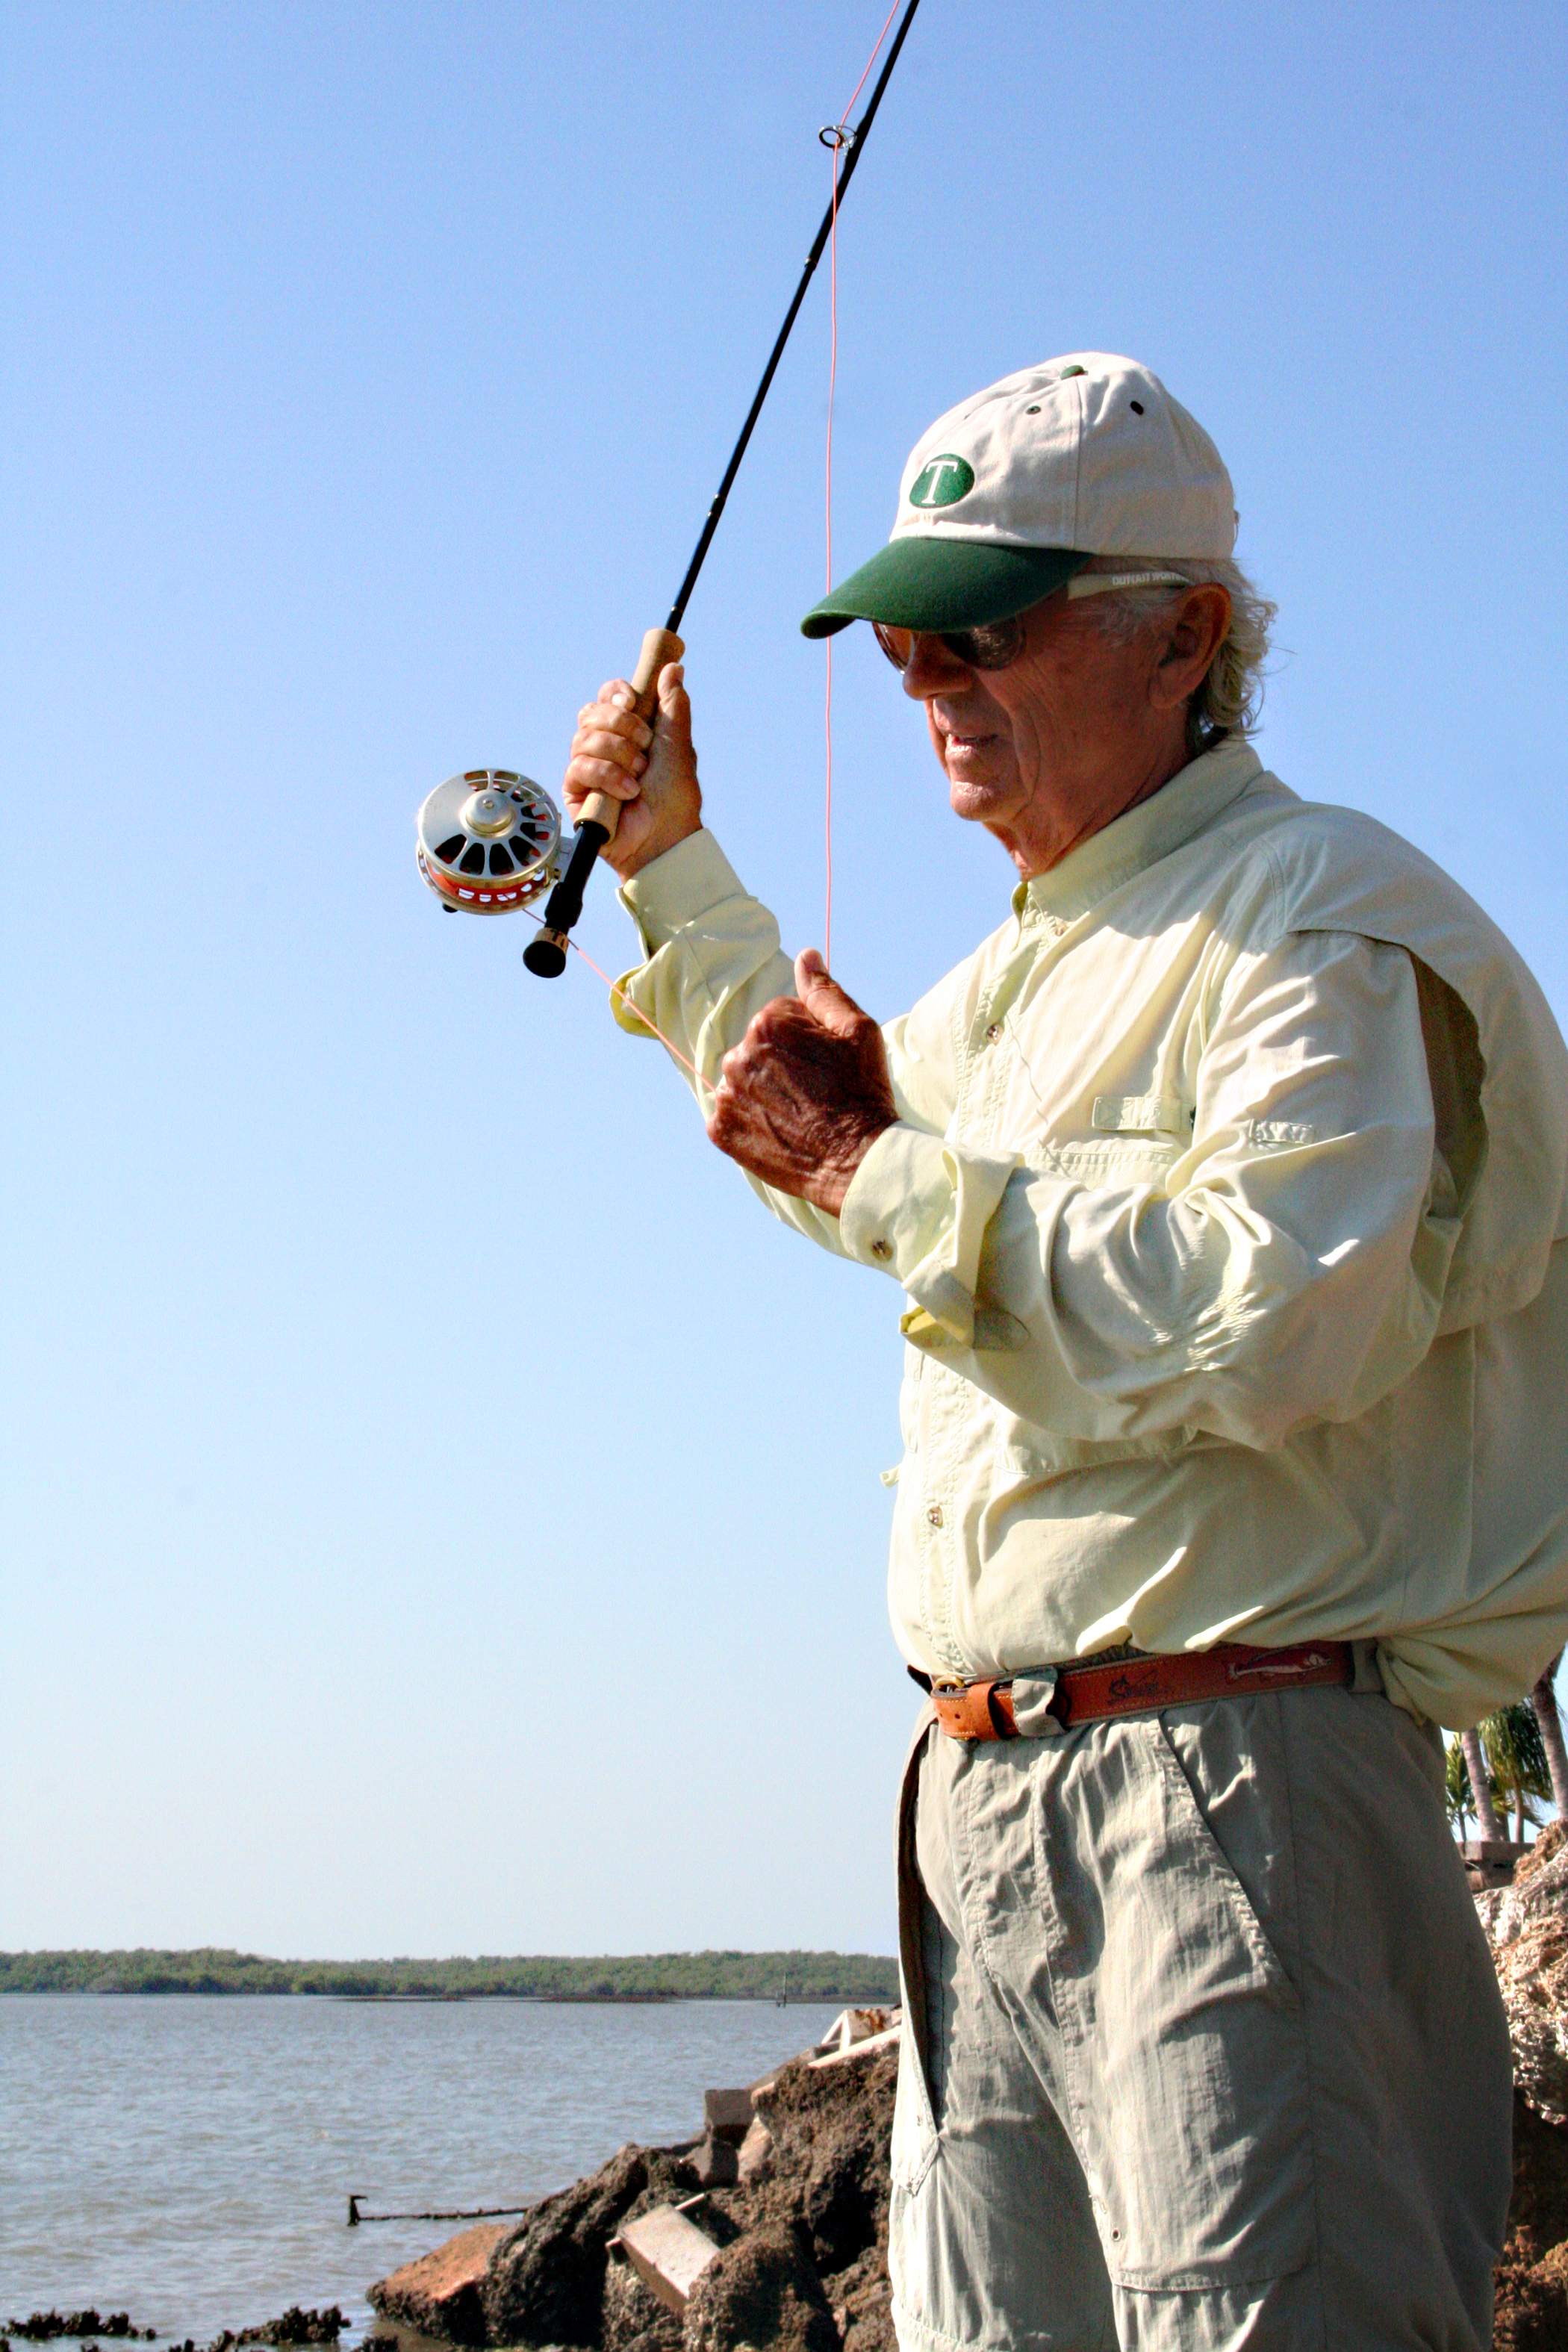 Tibor enjoying some fishing time with one of his reels